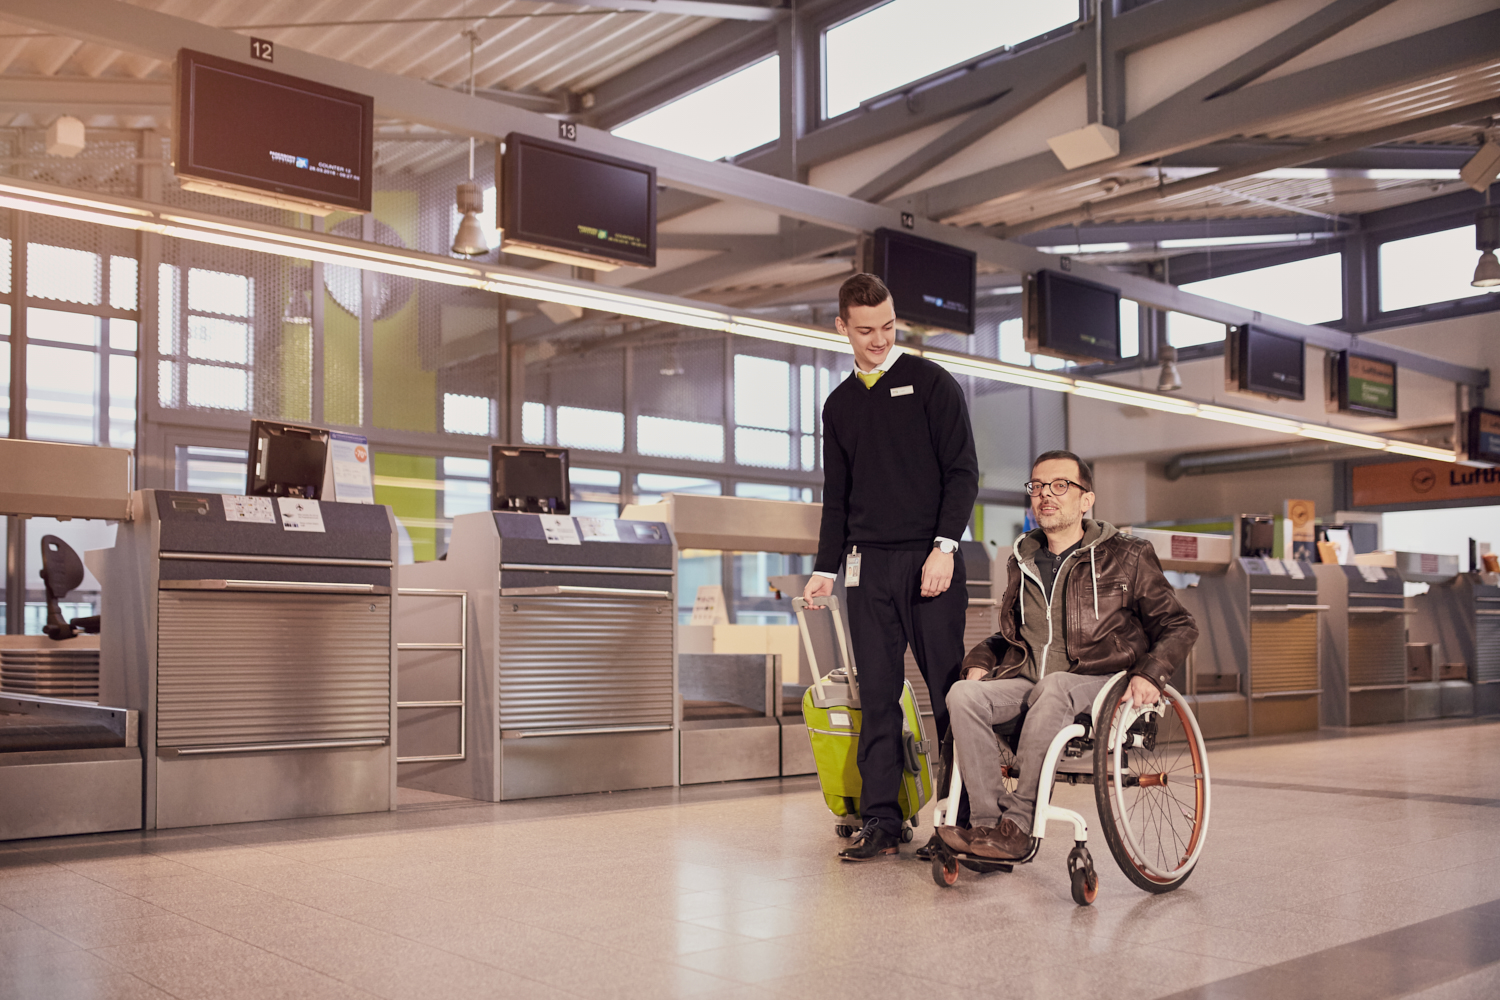 wheelchair user accompanied by staff